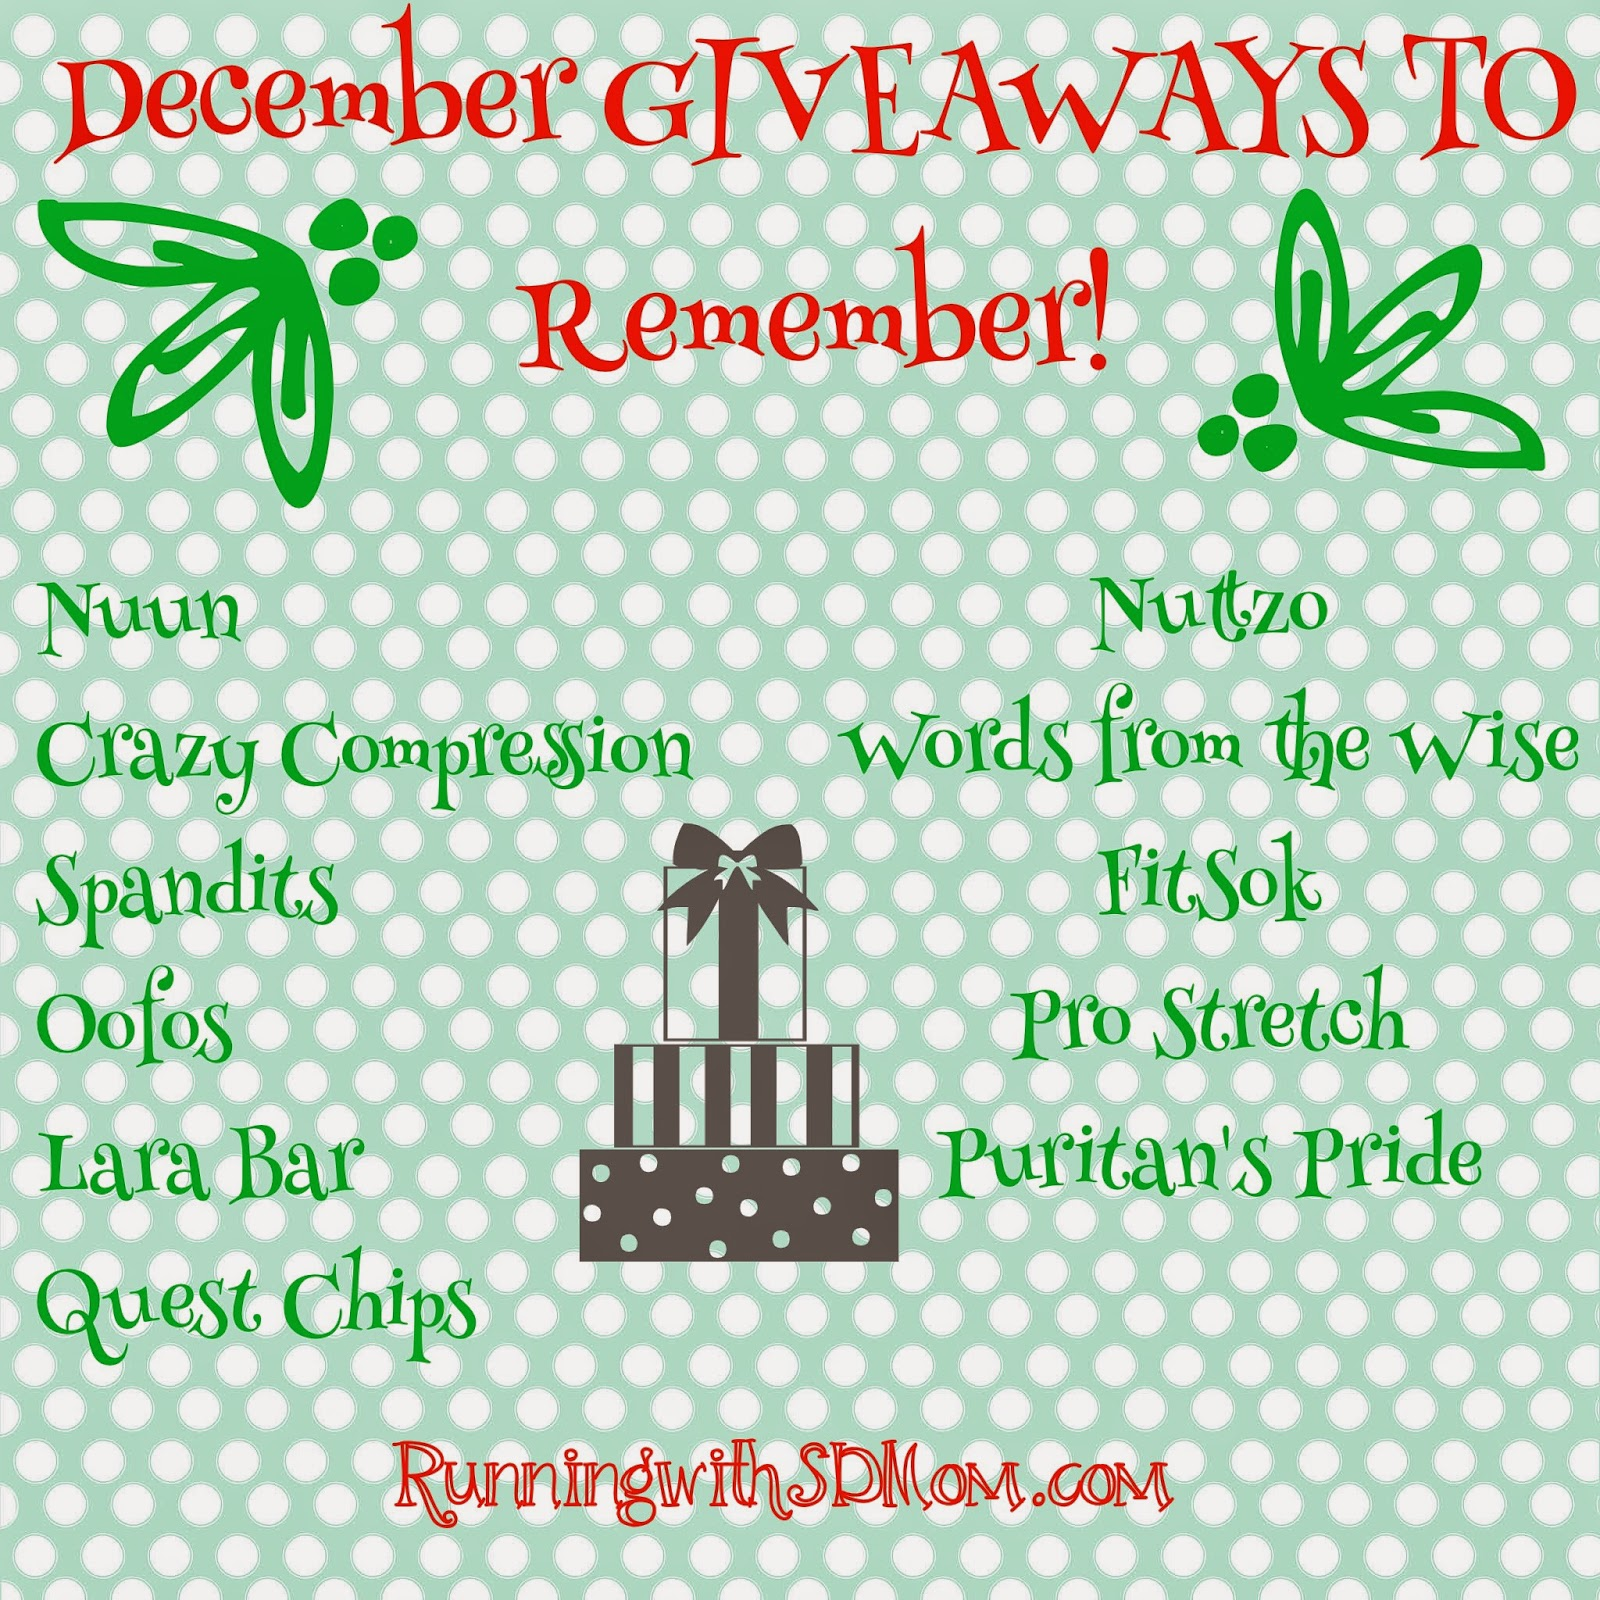 38fb637619 Thank you so much to Crazy Compression but most of all, thank you for you!  What a great end to the year giving away 11 of my very favorites!